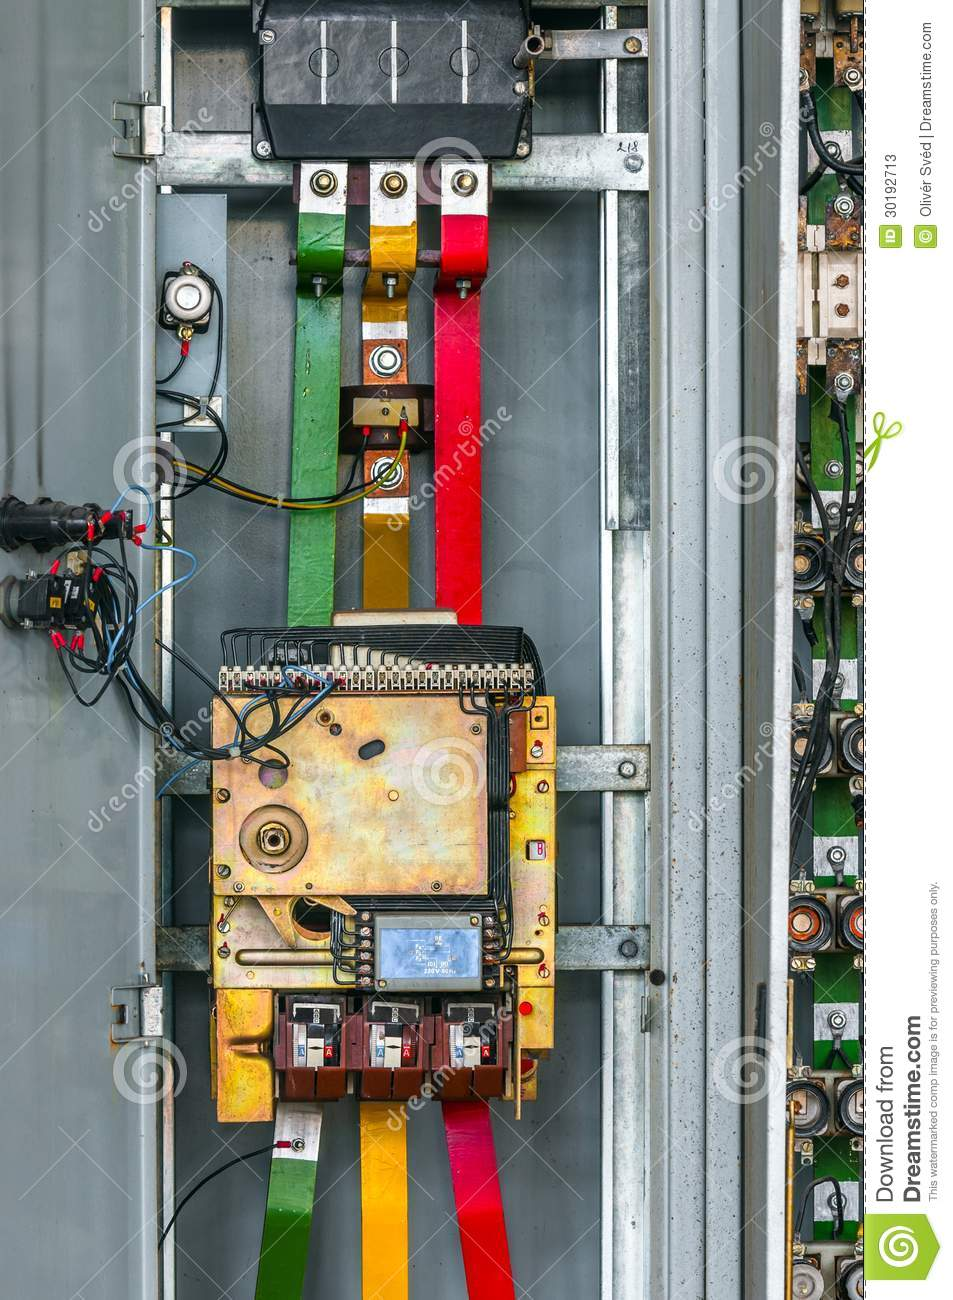 industrial fuse box on the wall stock image image of background rh dreamstime com Bussmann Fuse Company industrial fuse box